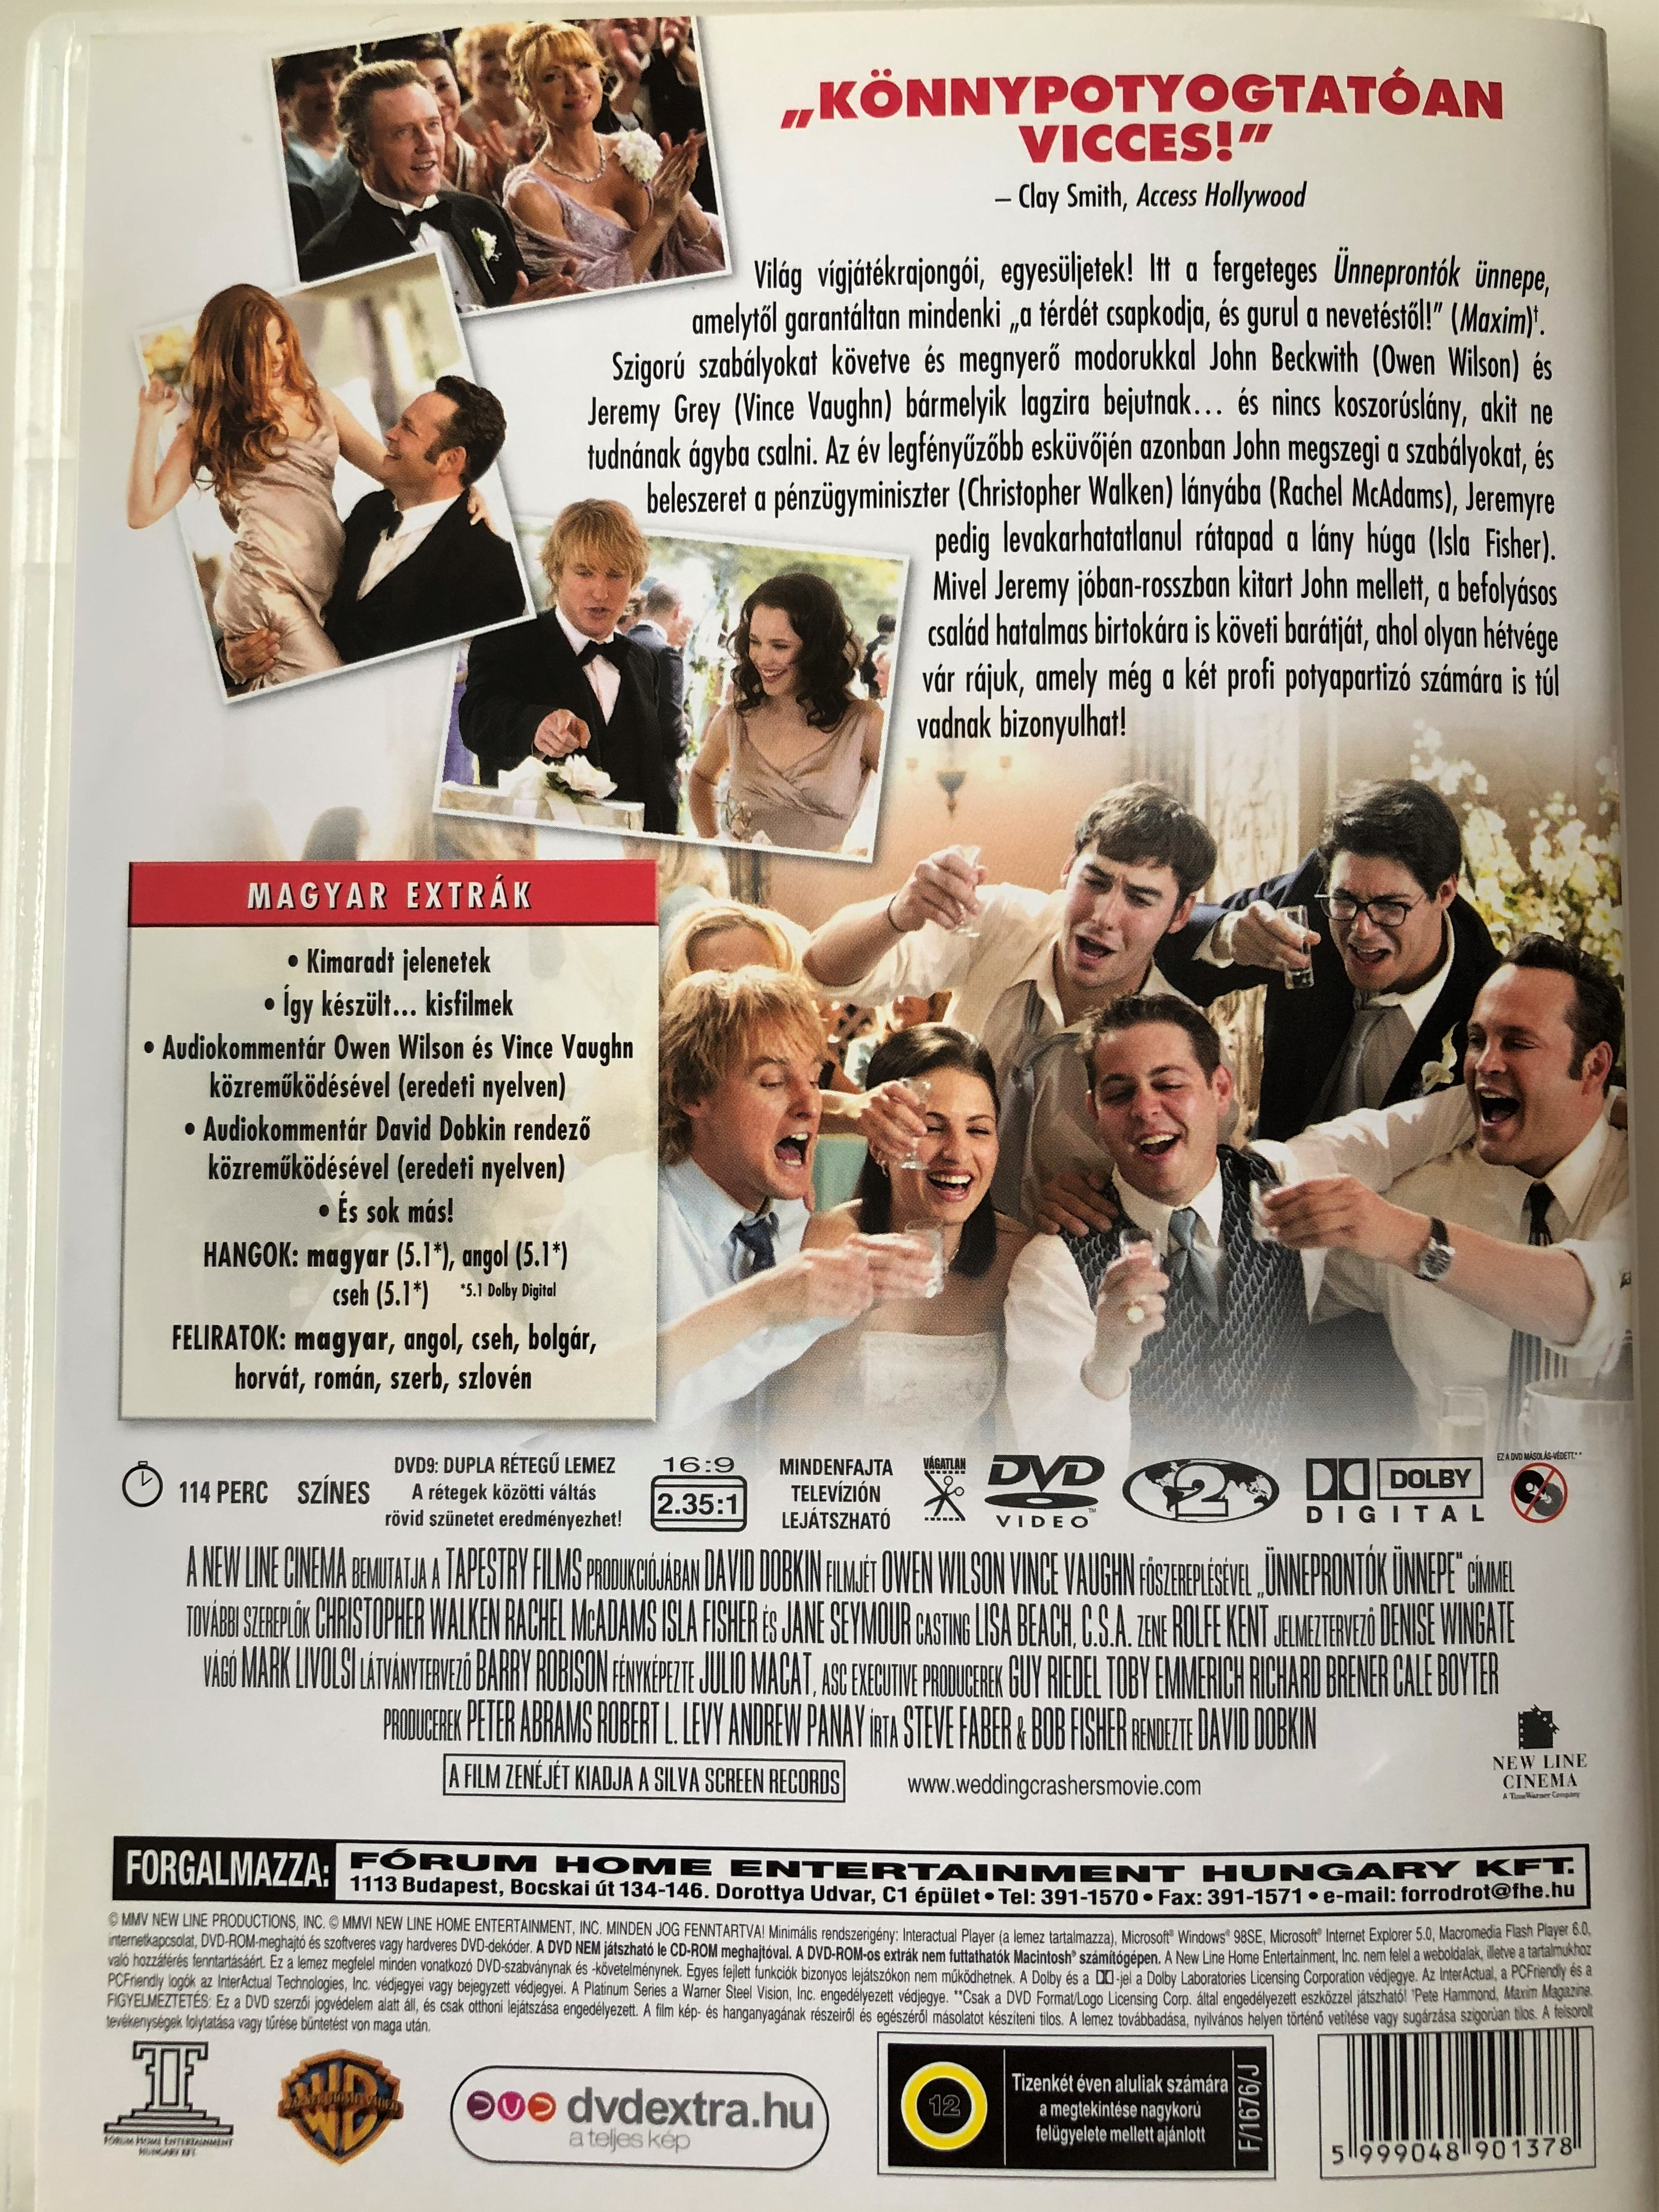 wedding-crashers-dvd-2005-nnepront-k-nnepe-directed-by-david-dobkin-starring-owen-wilson-vince-vaughn-christopher-walken-rachel-mcadams-isla-fisher-bradley-cooper-jane-seymour-2-.jpg